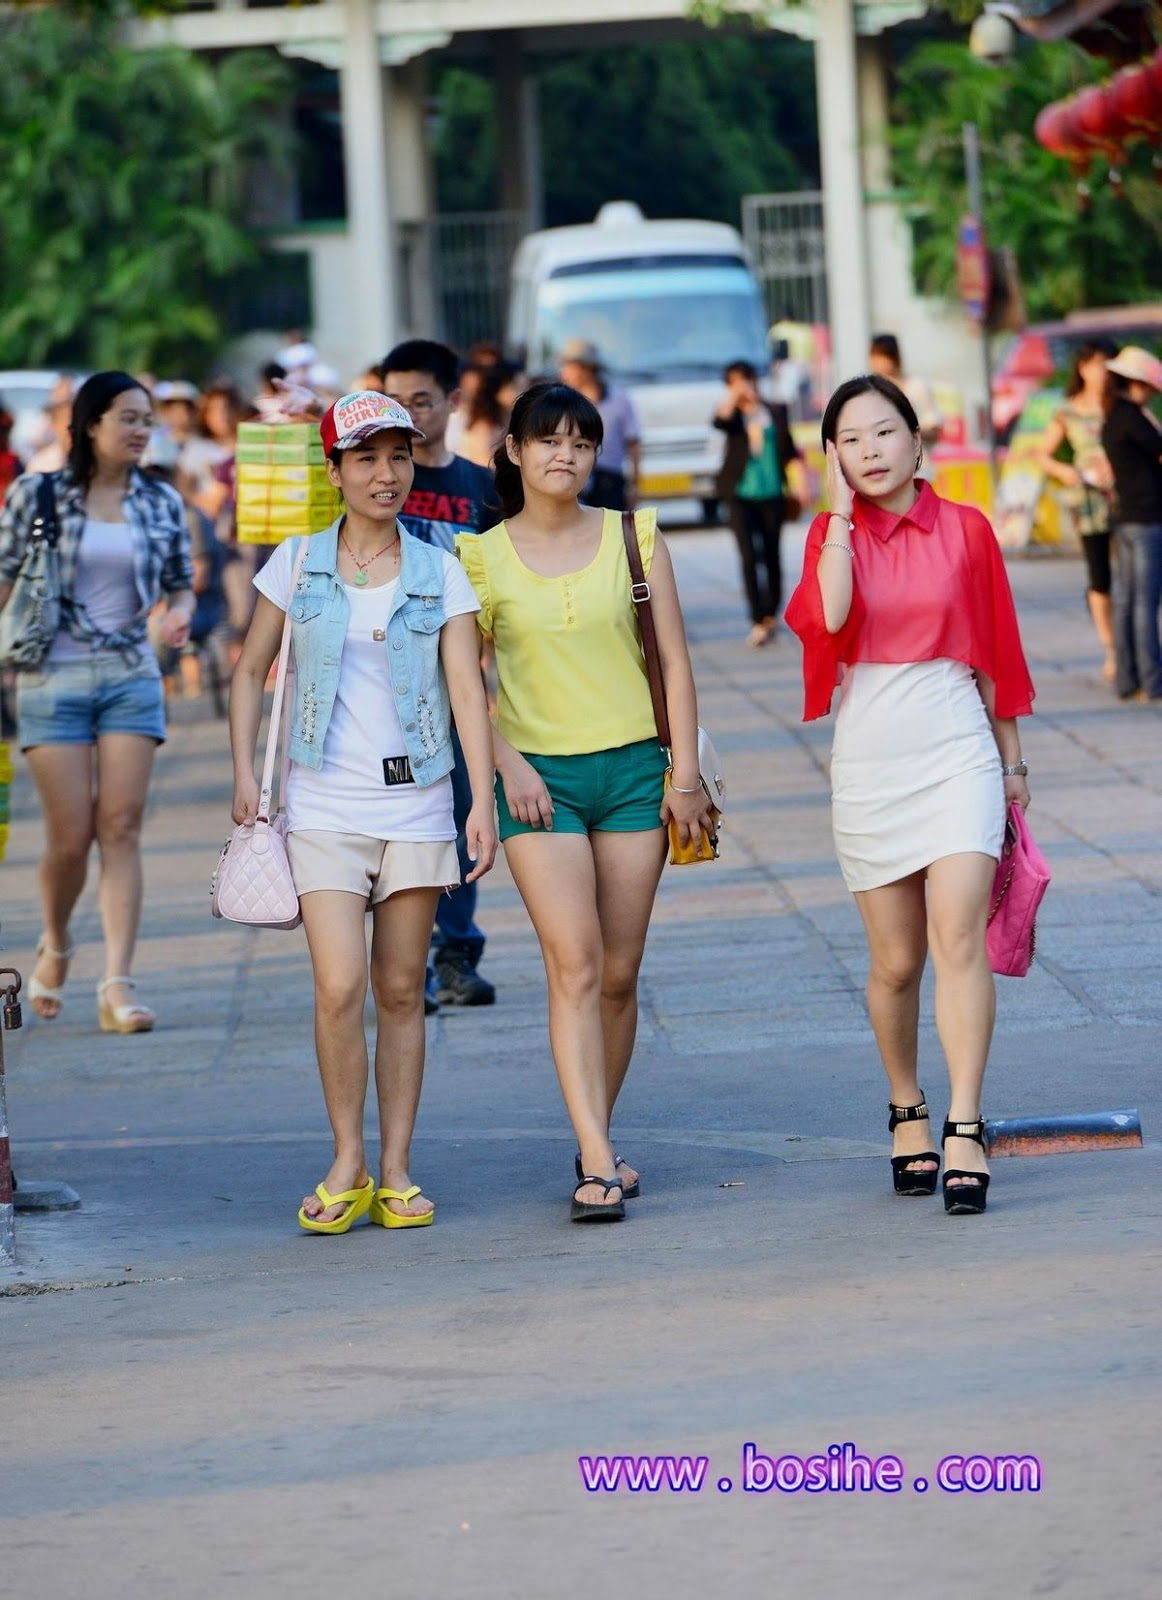 asia travel photography: chinese street candid a cameltoe, street